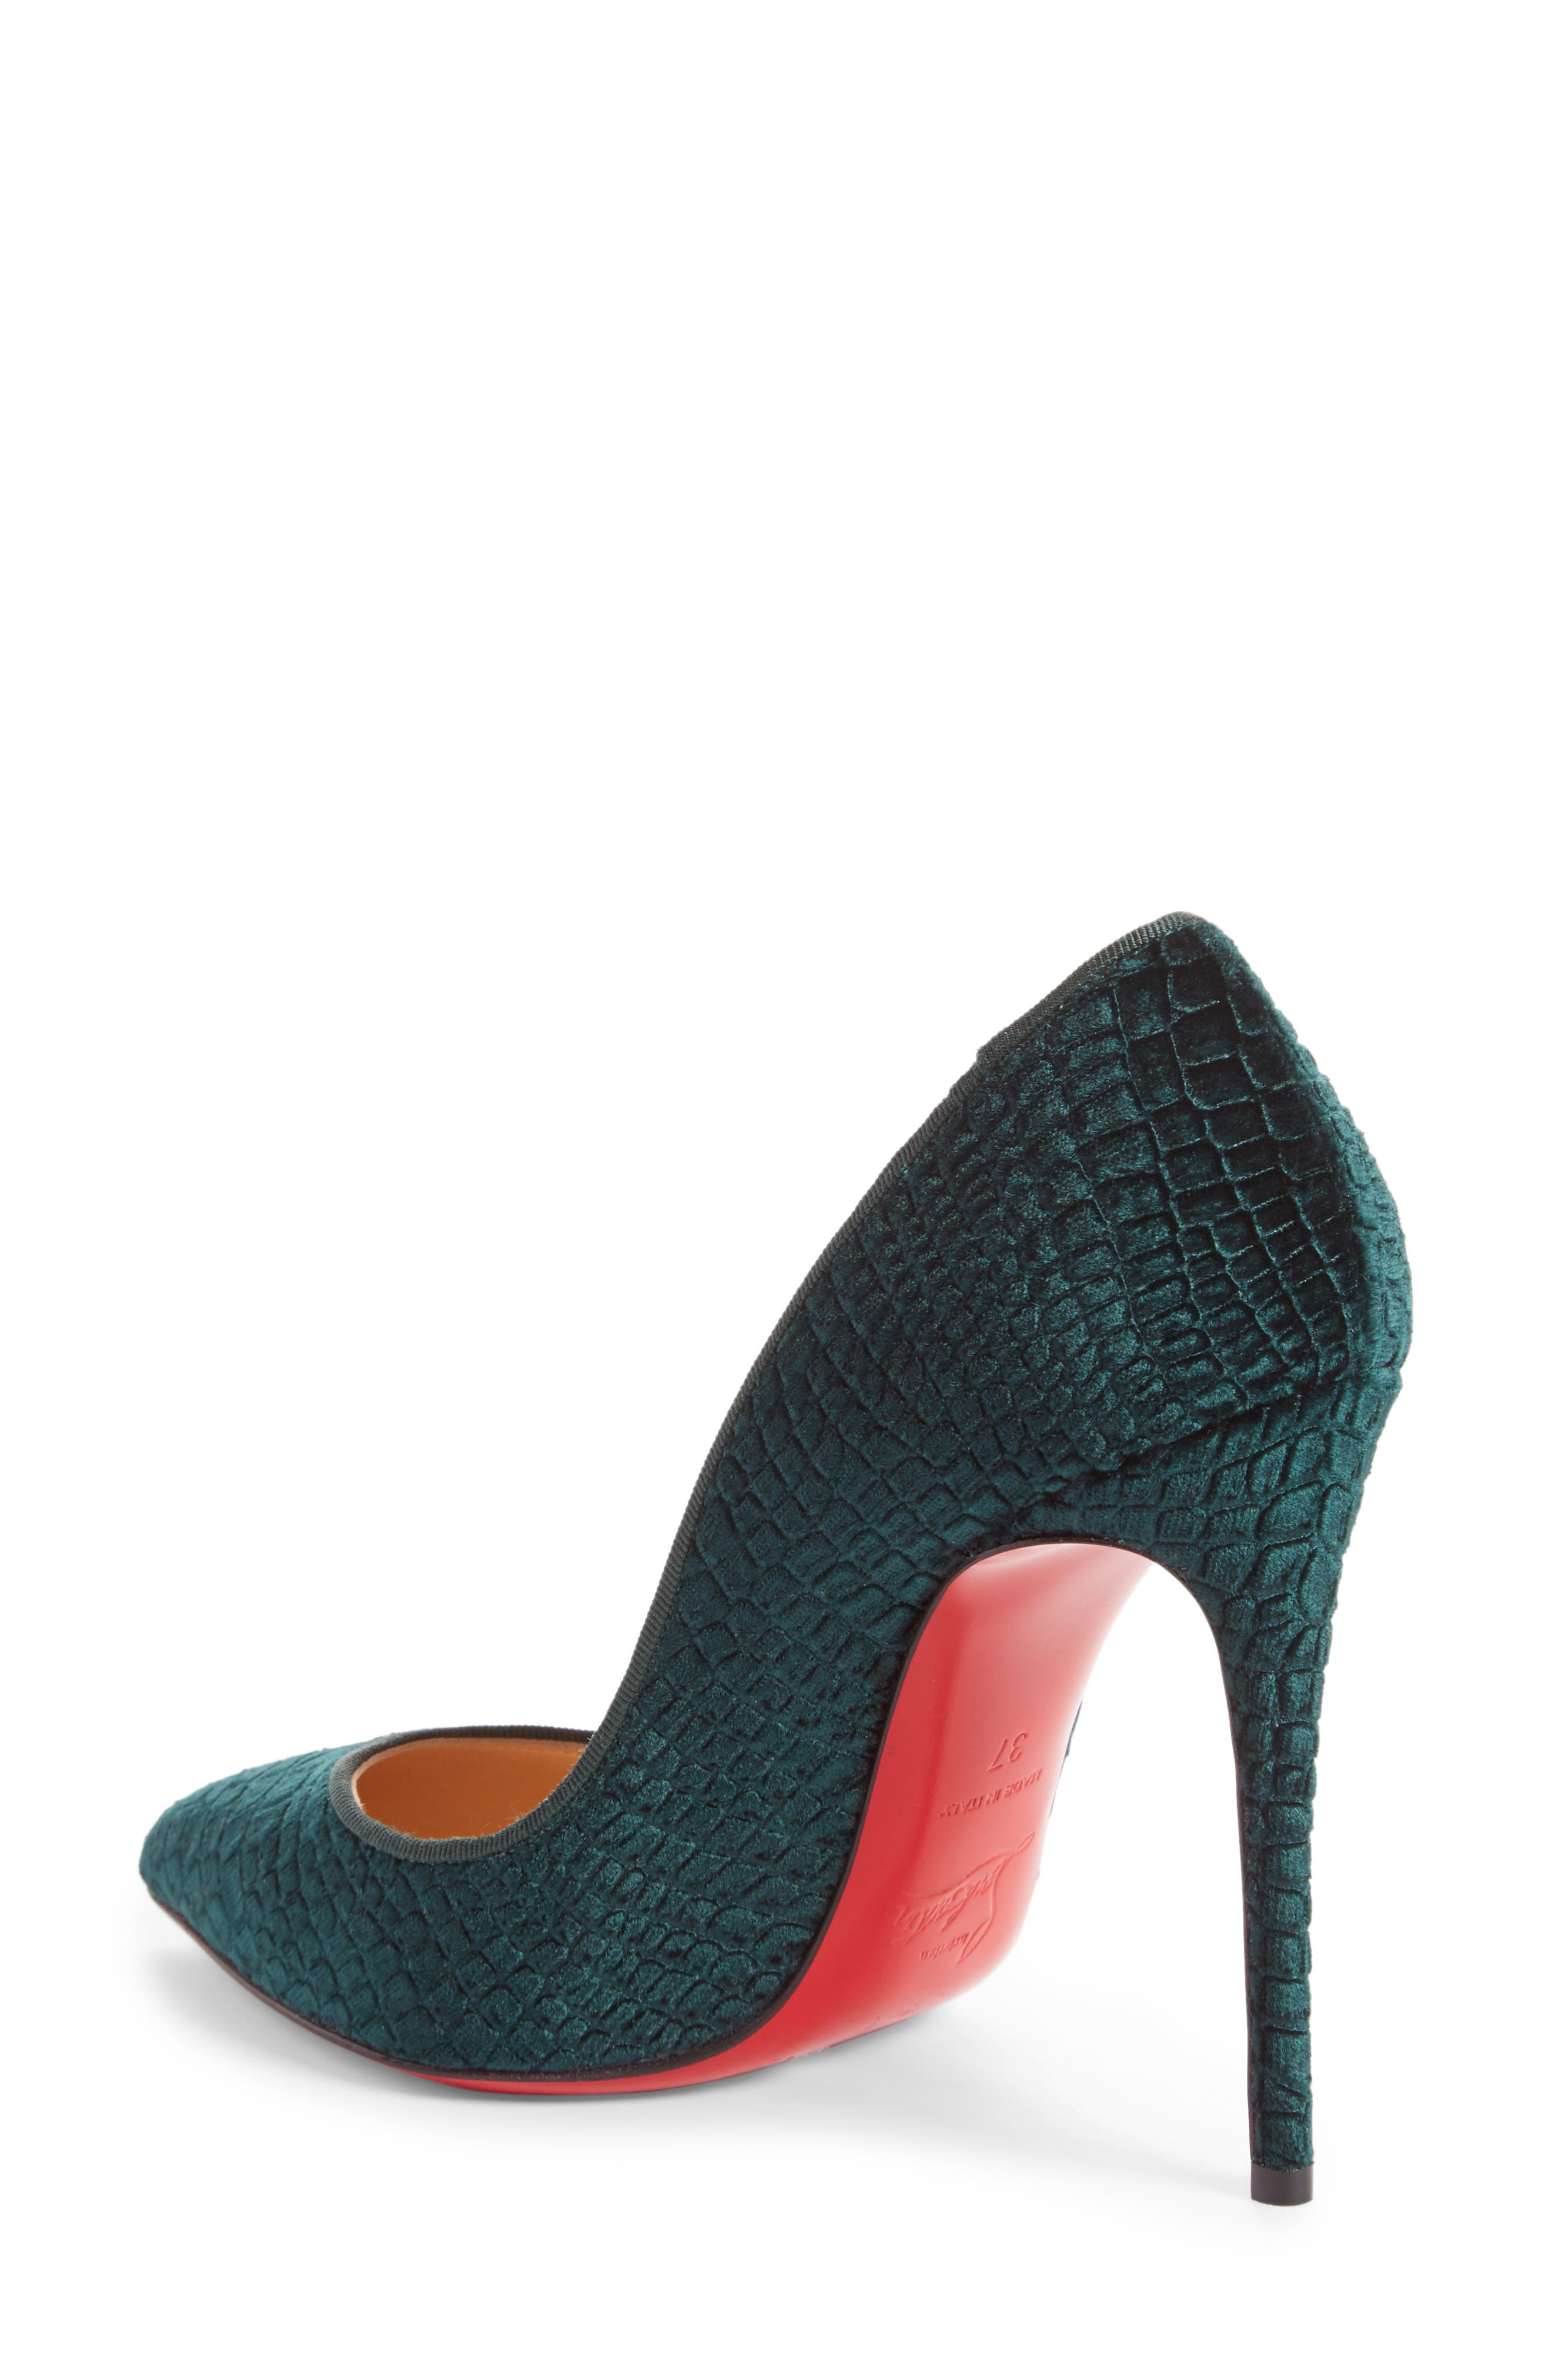 Pigalle Follies Pointy Toe Pump,                             Alternate thumbnail 2, color,                             300